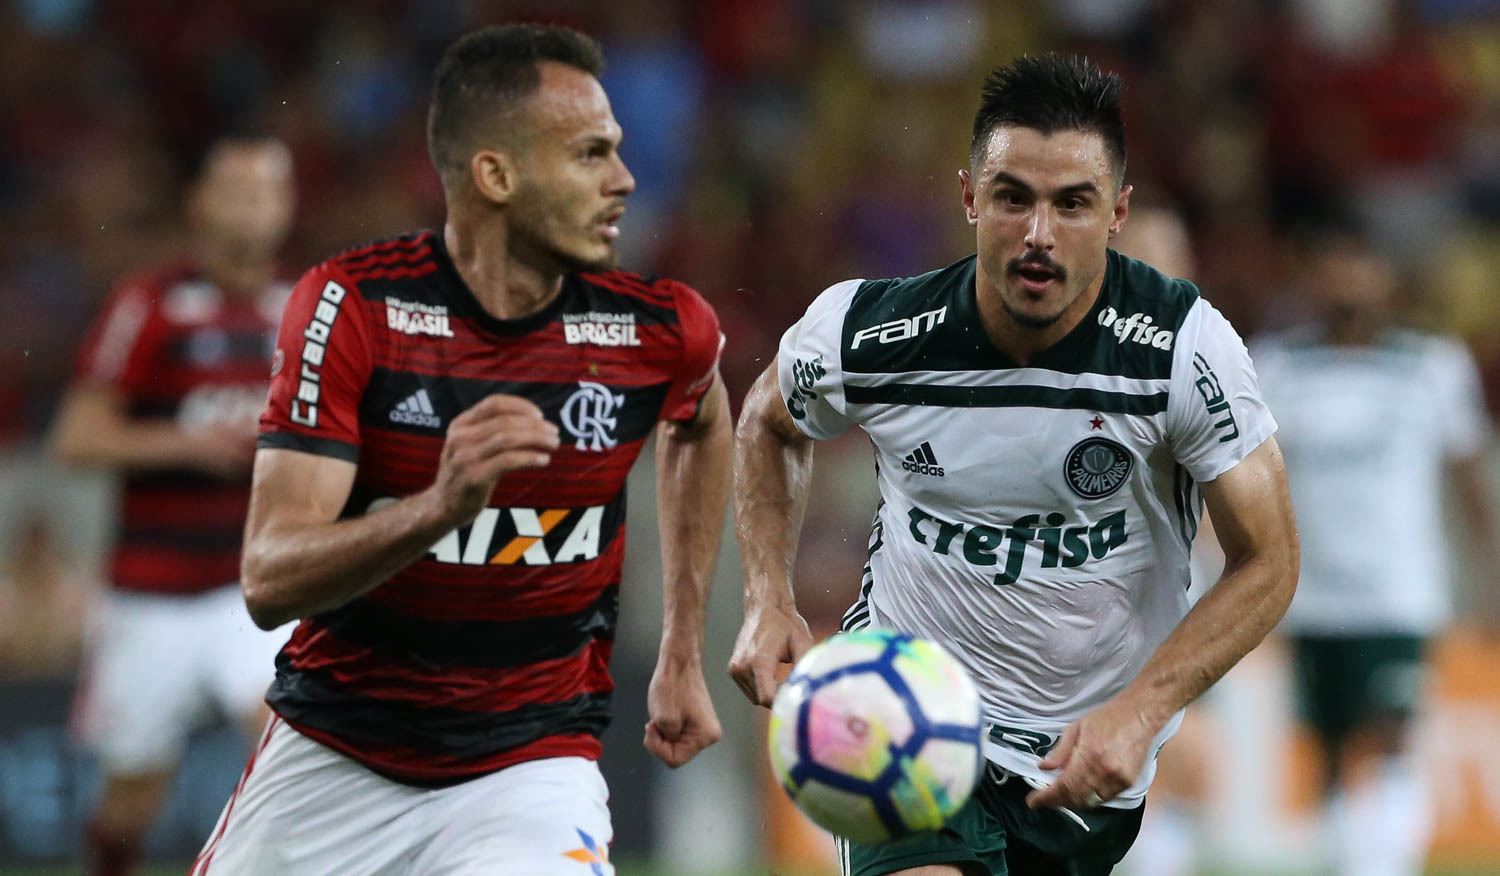 Renê, do Flamengo, e Willian, do Palmeiras, disputam jogada